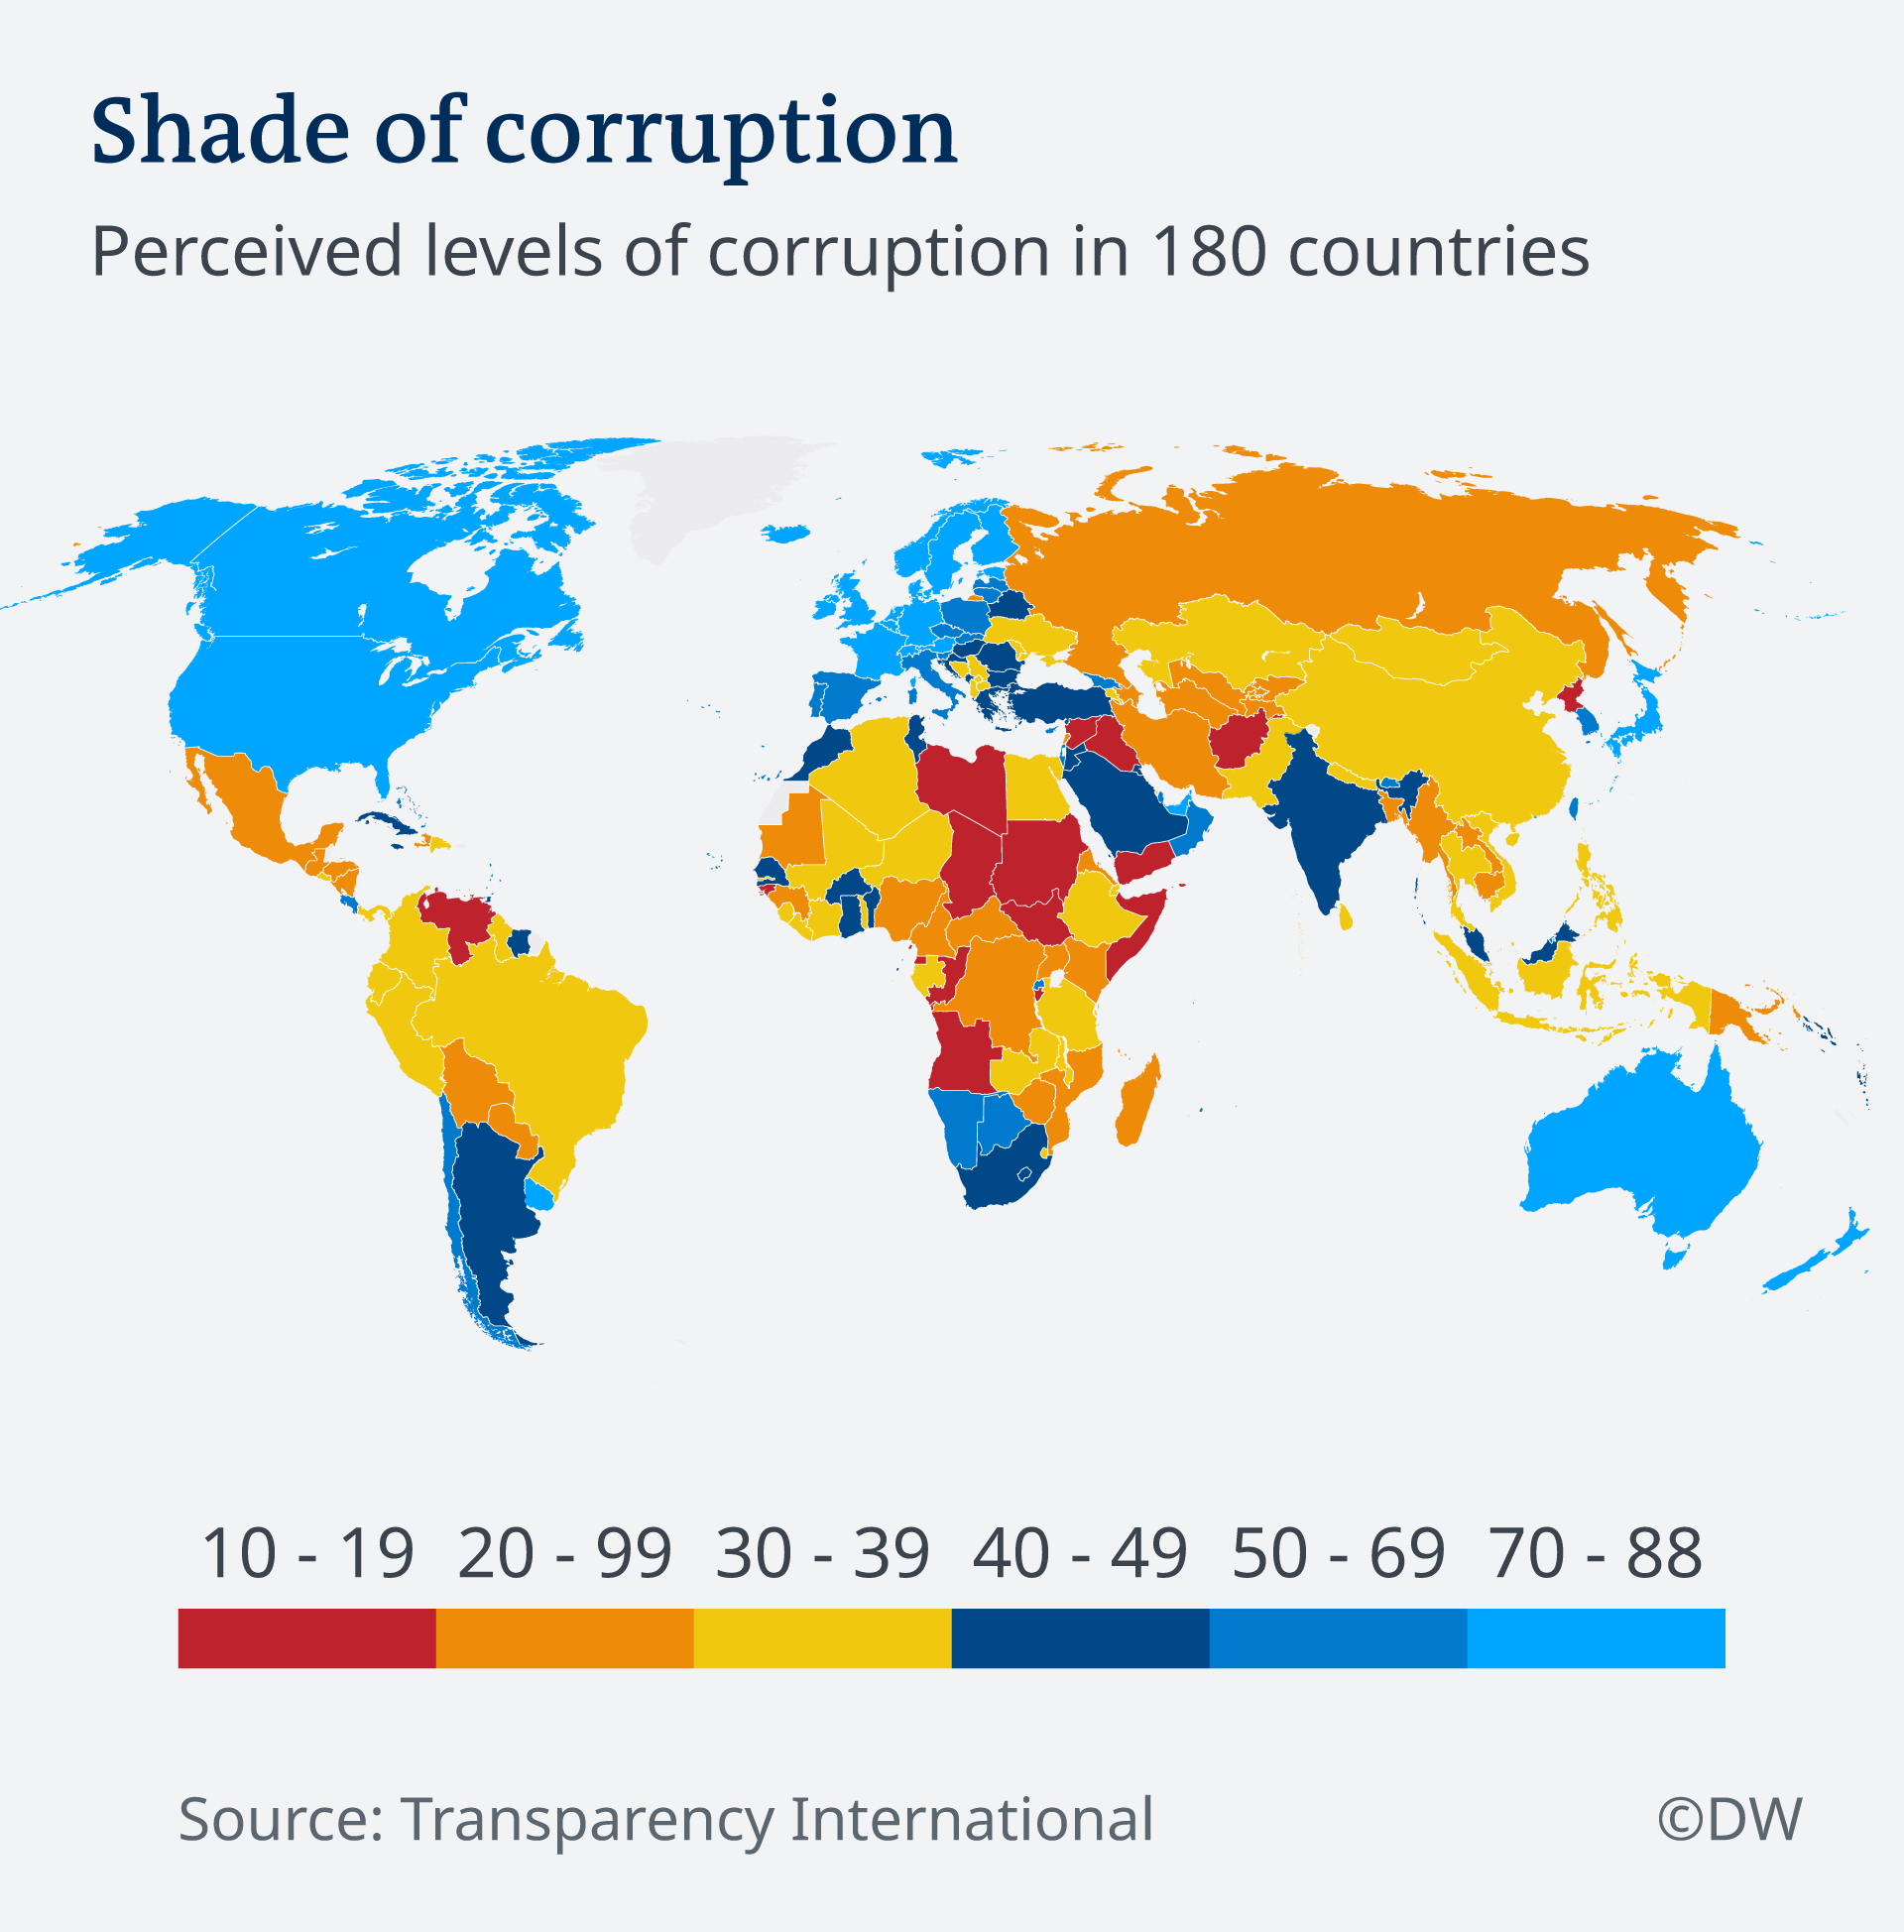 Infographic showing preceived levels of corruption in 180 countries